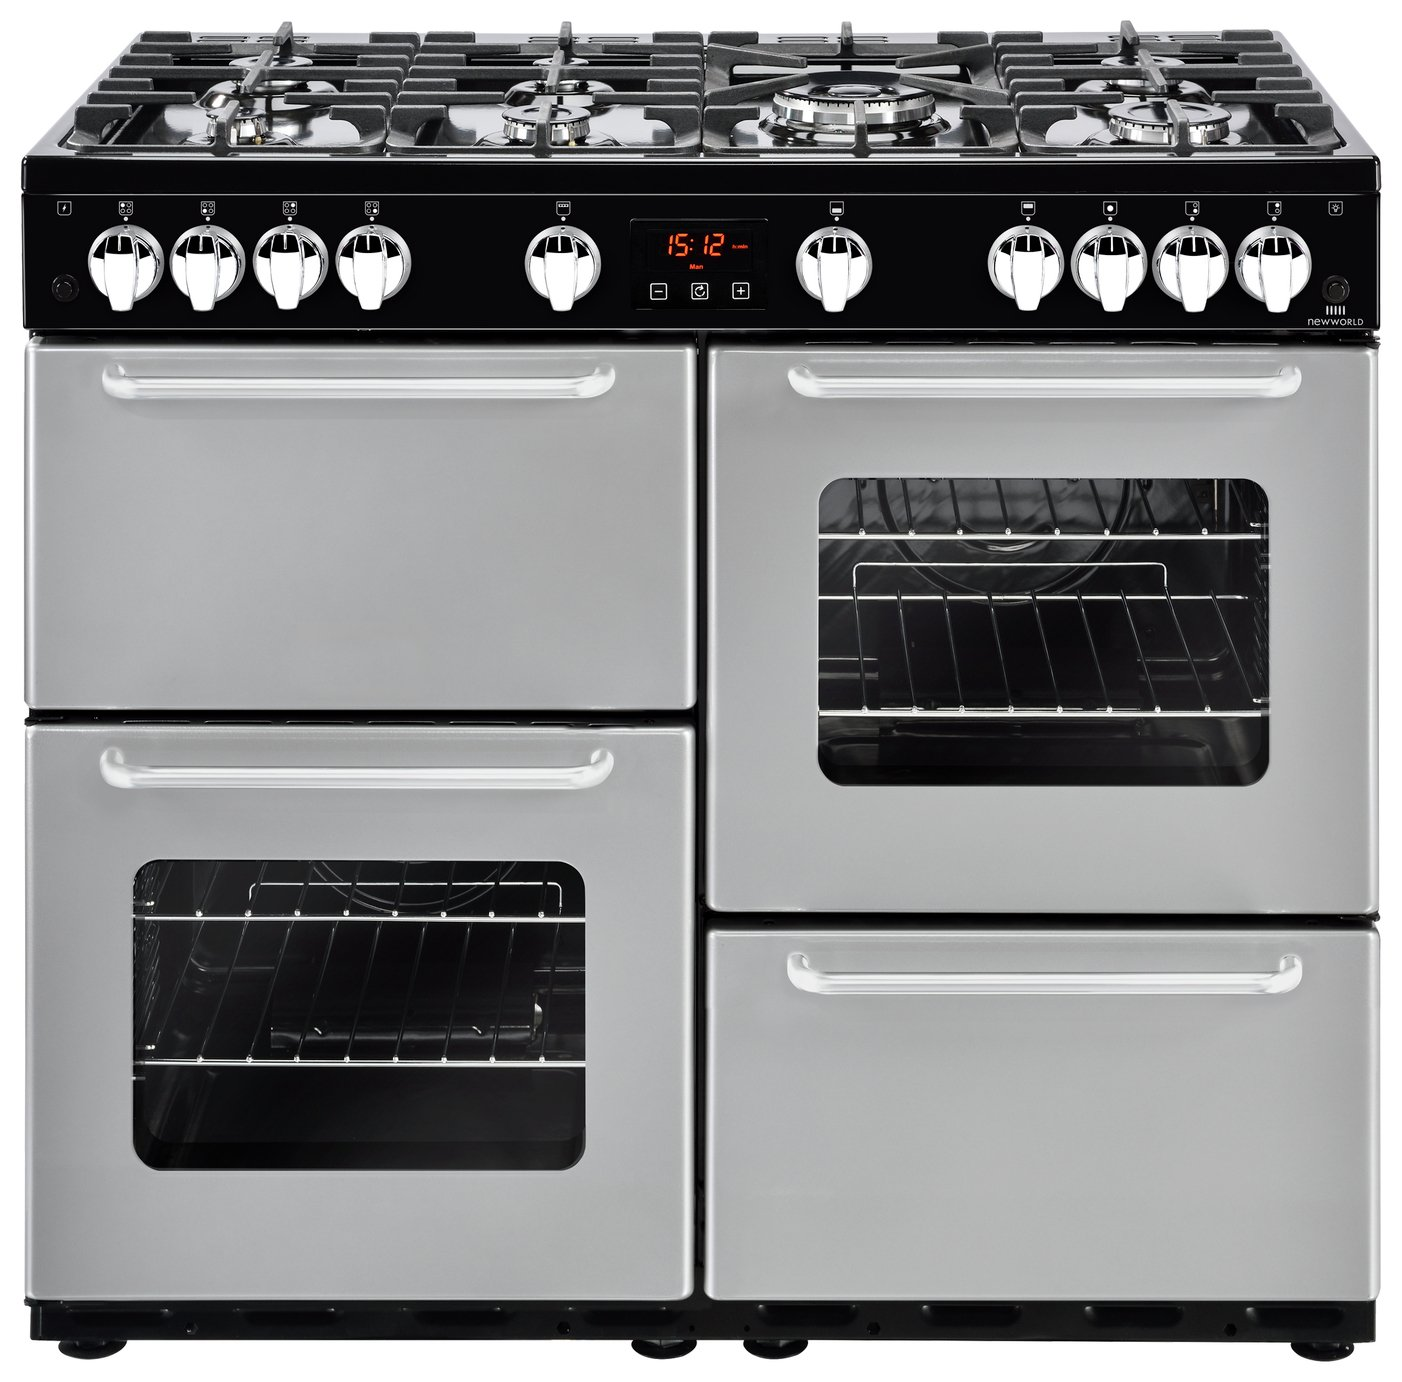 New World Traditional Gas Range Cooker - Silver.